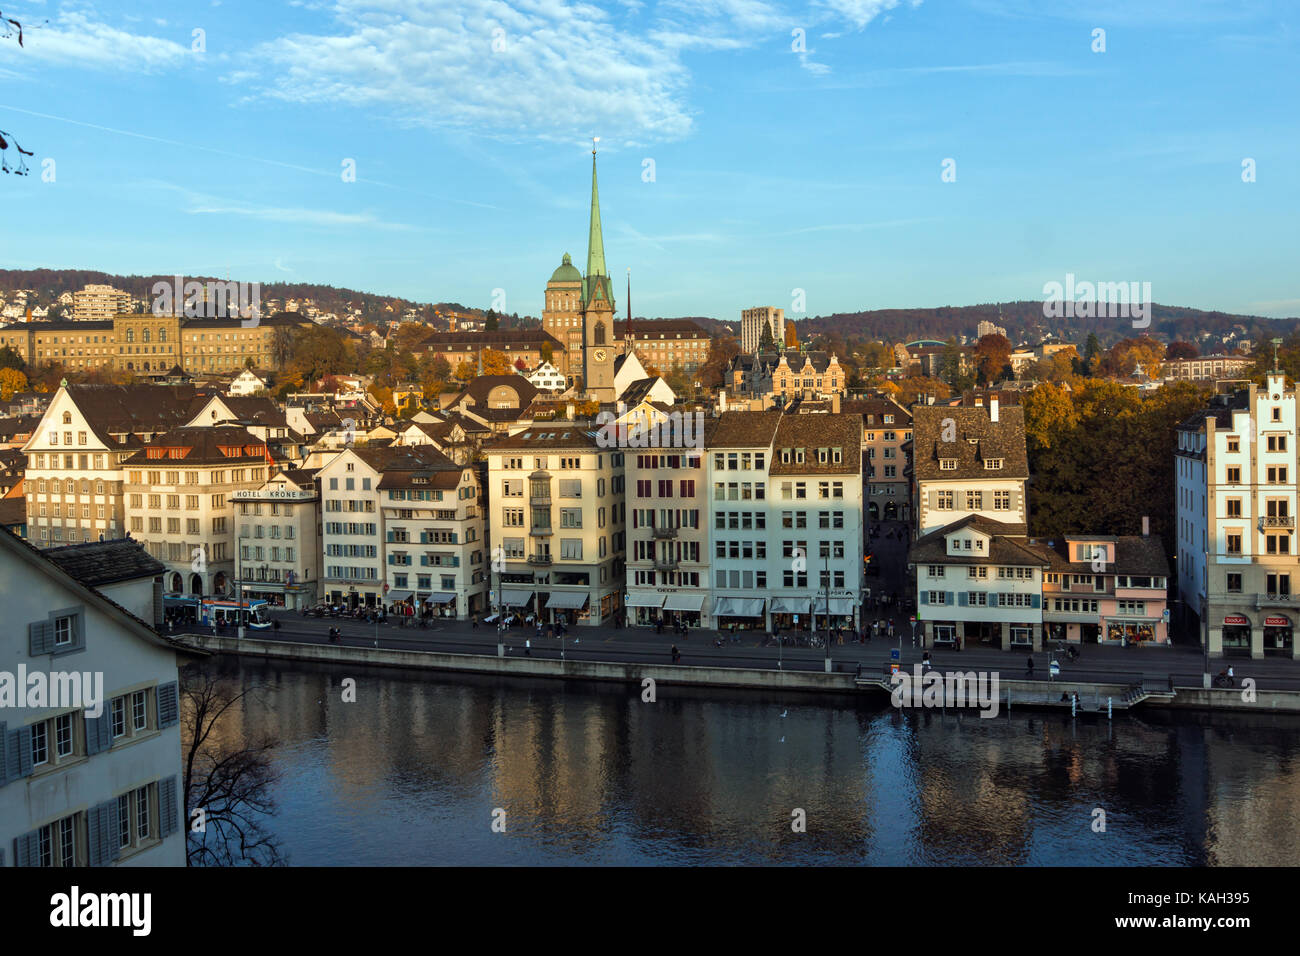 Panorama of city of Zurich and Limmat River, Switzerland - Stock Image